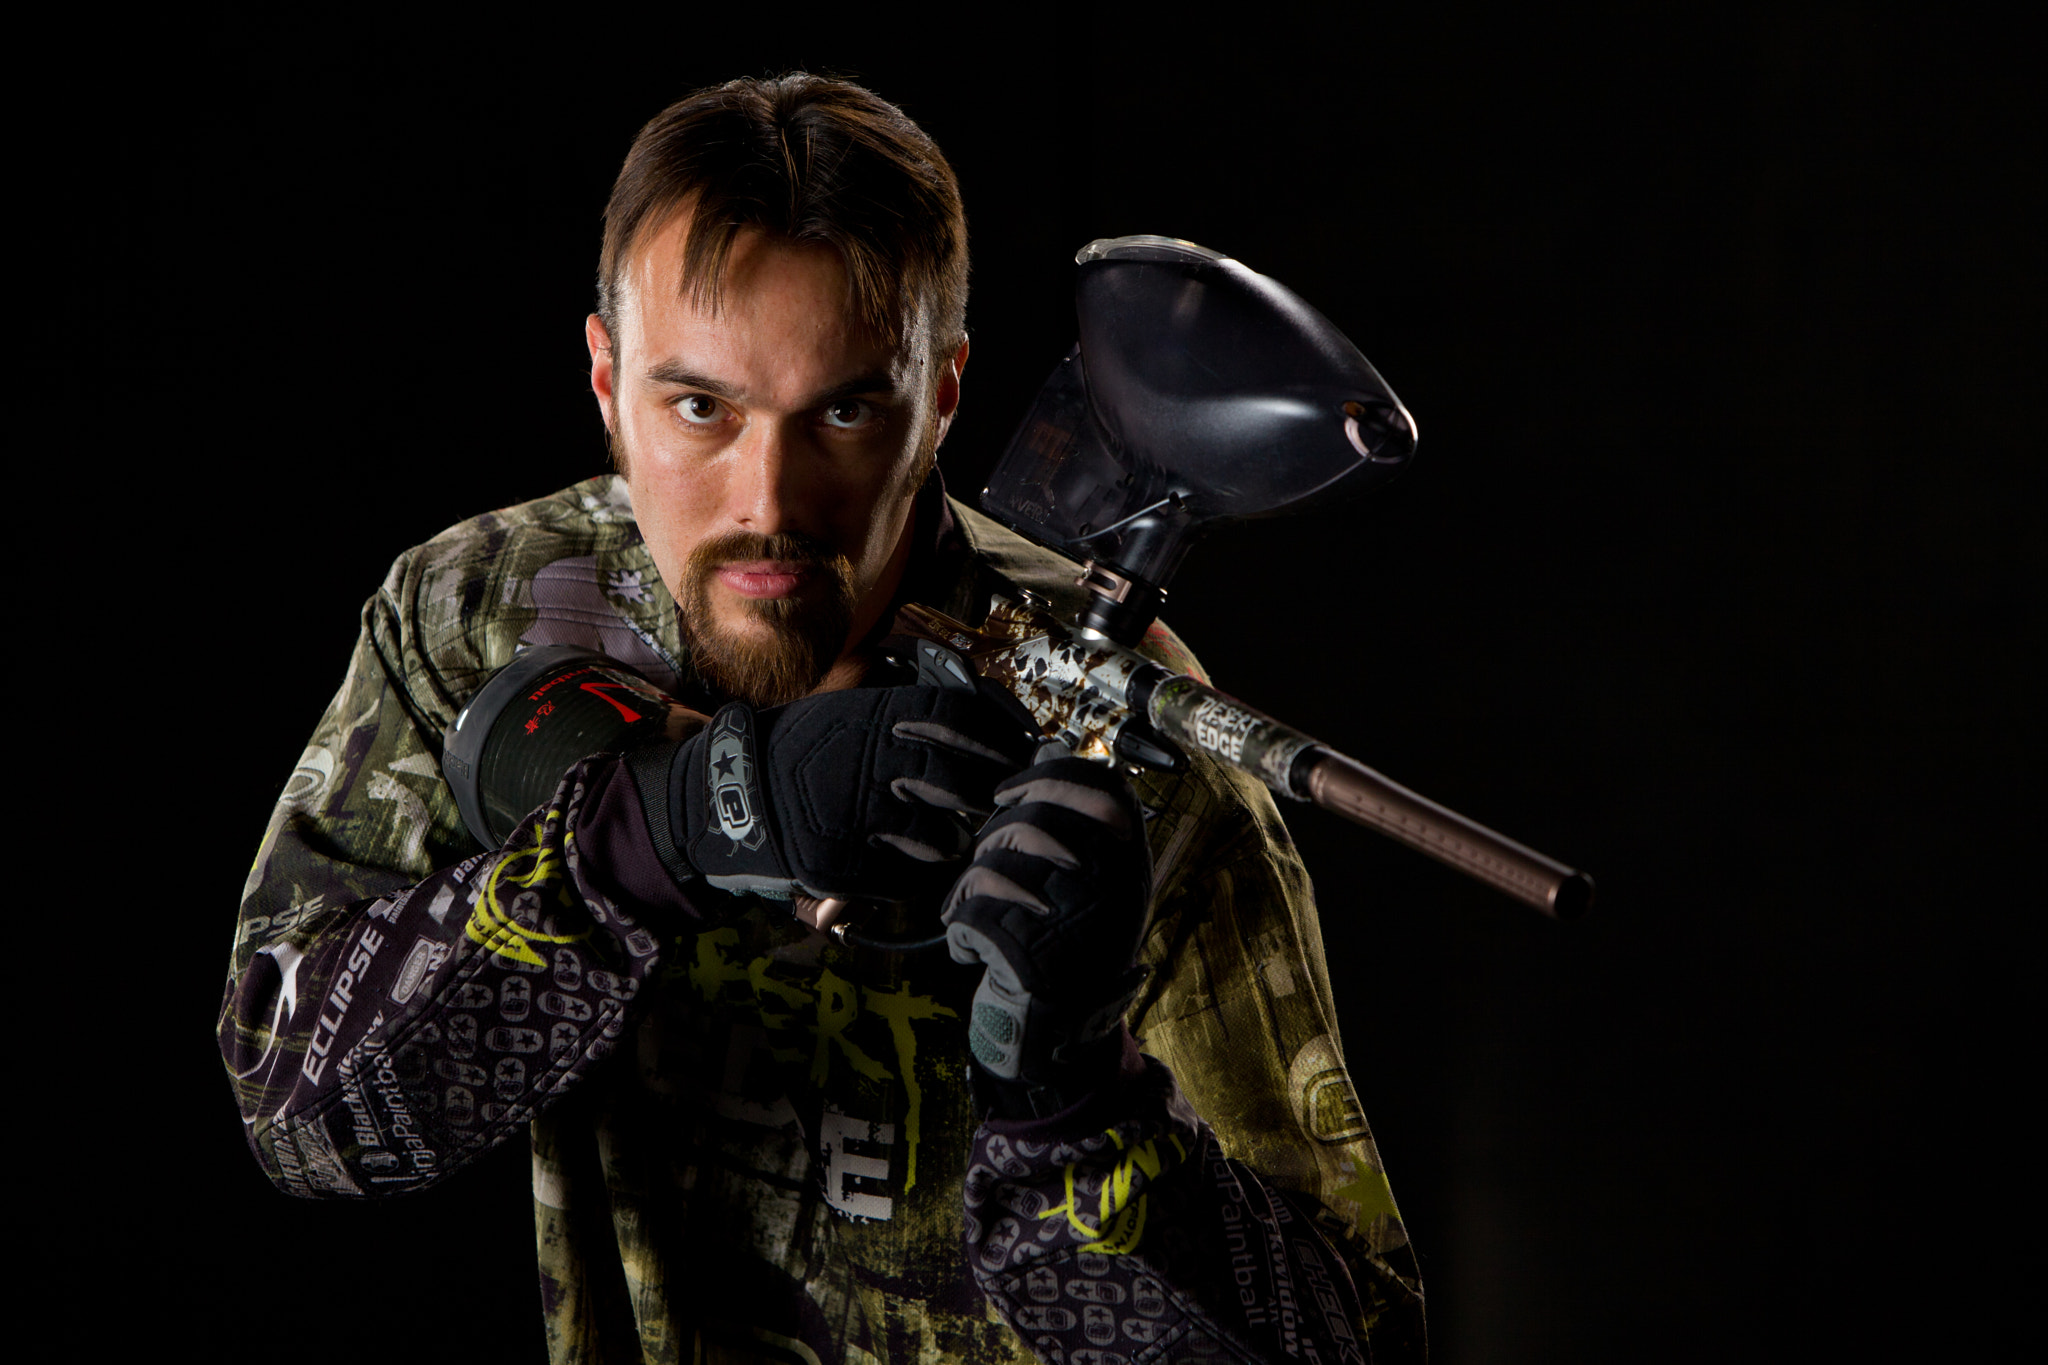 Photograph Paintball Portrait by Jeremy Hall on 500px